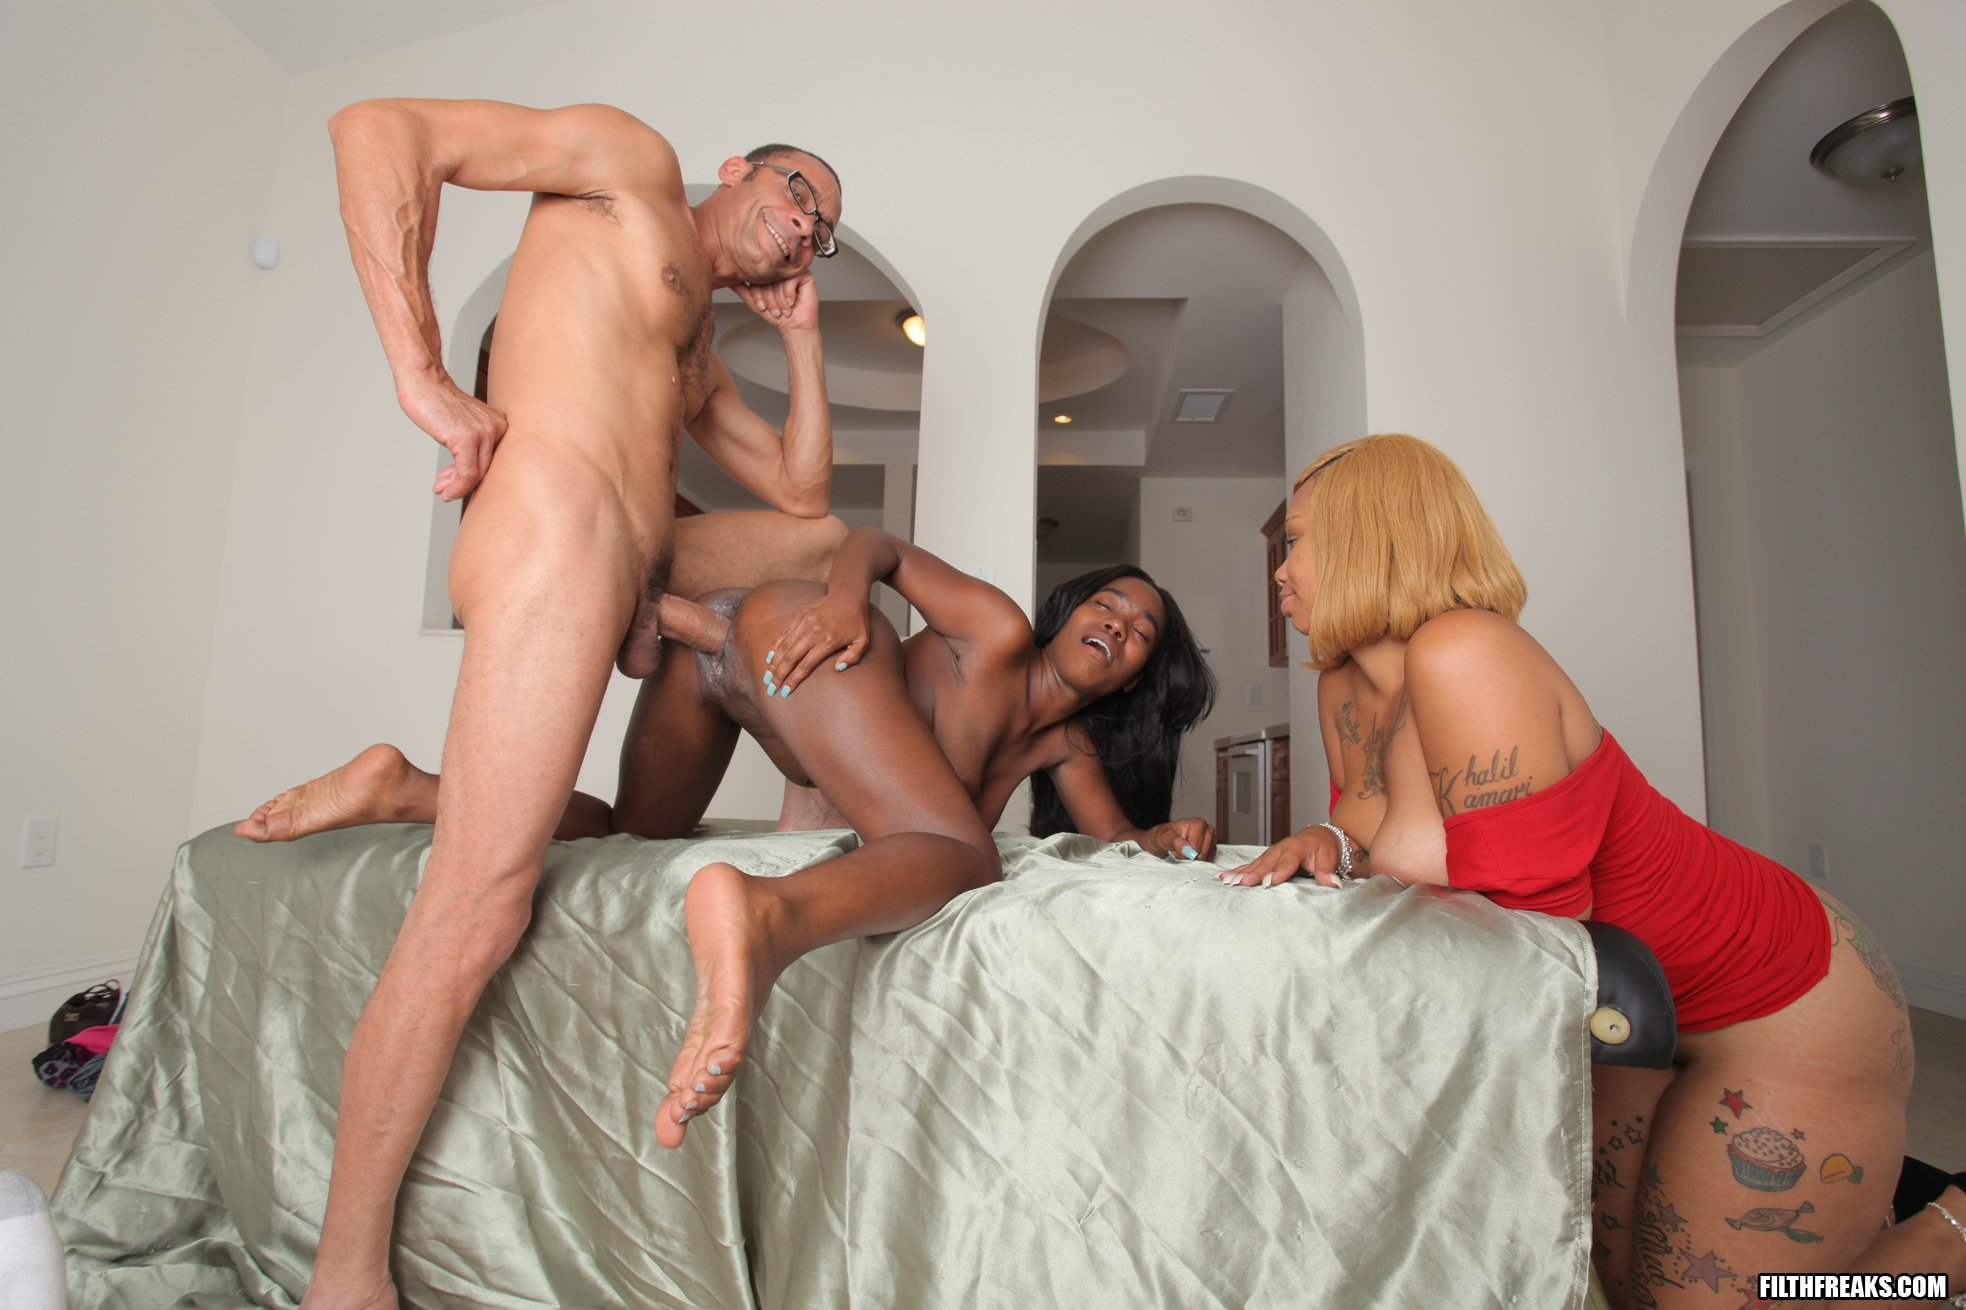 Interracial gangbang and another hot scene